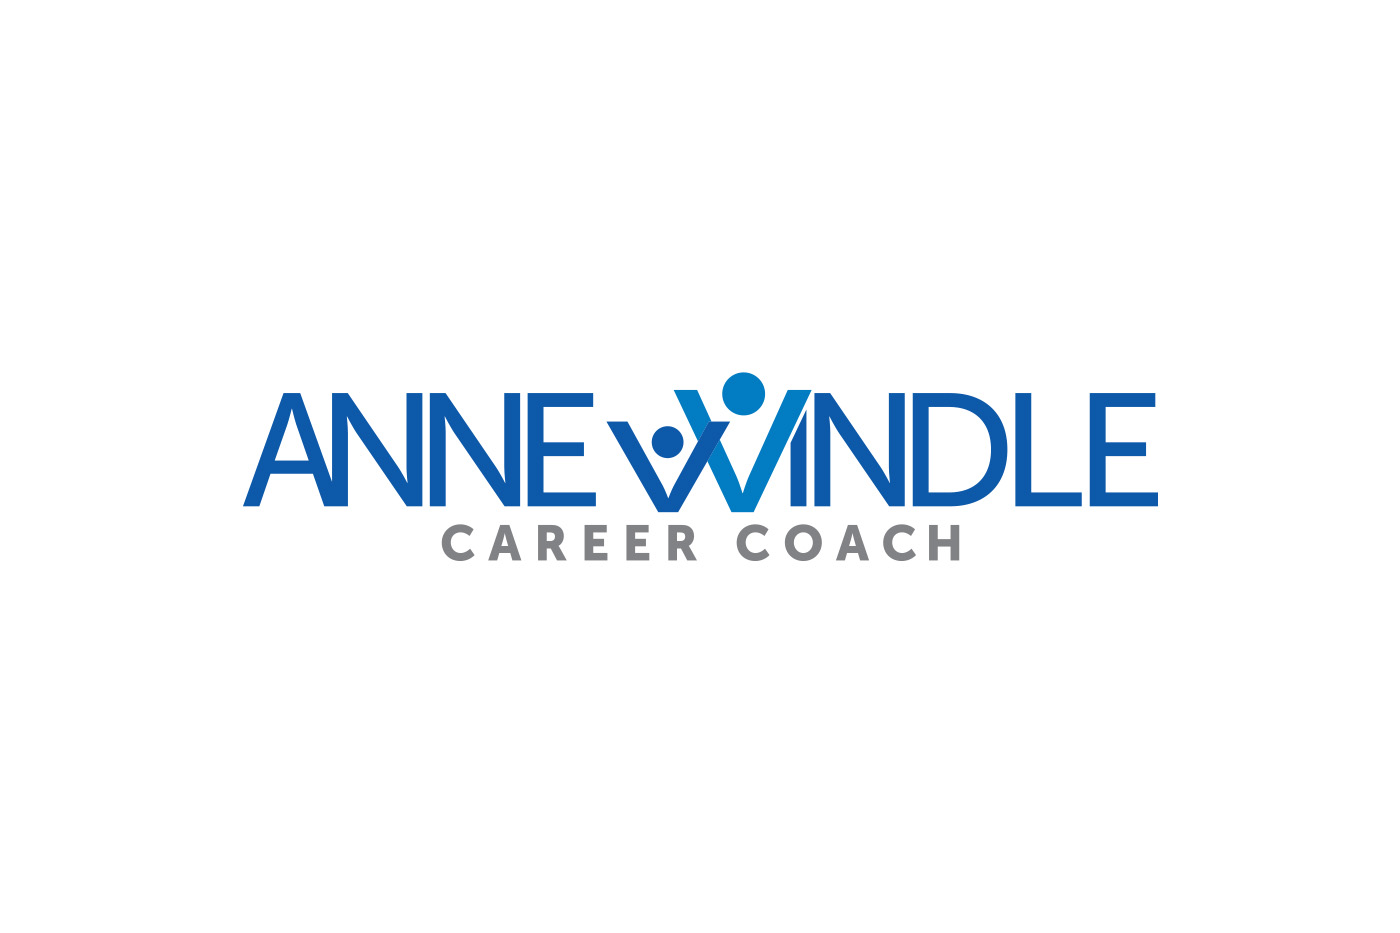 Anne-Windle-Career-Coach-logo-design.jpg